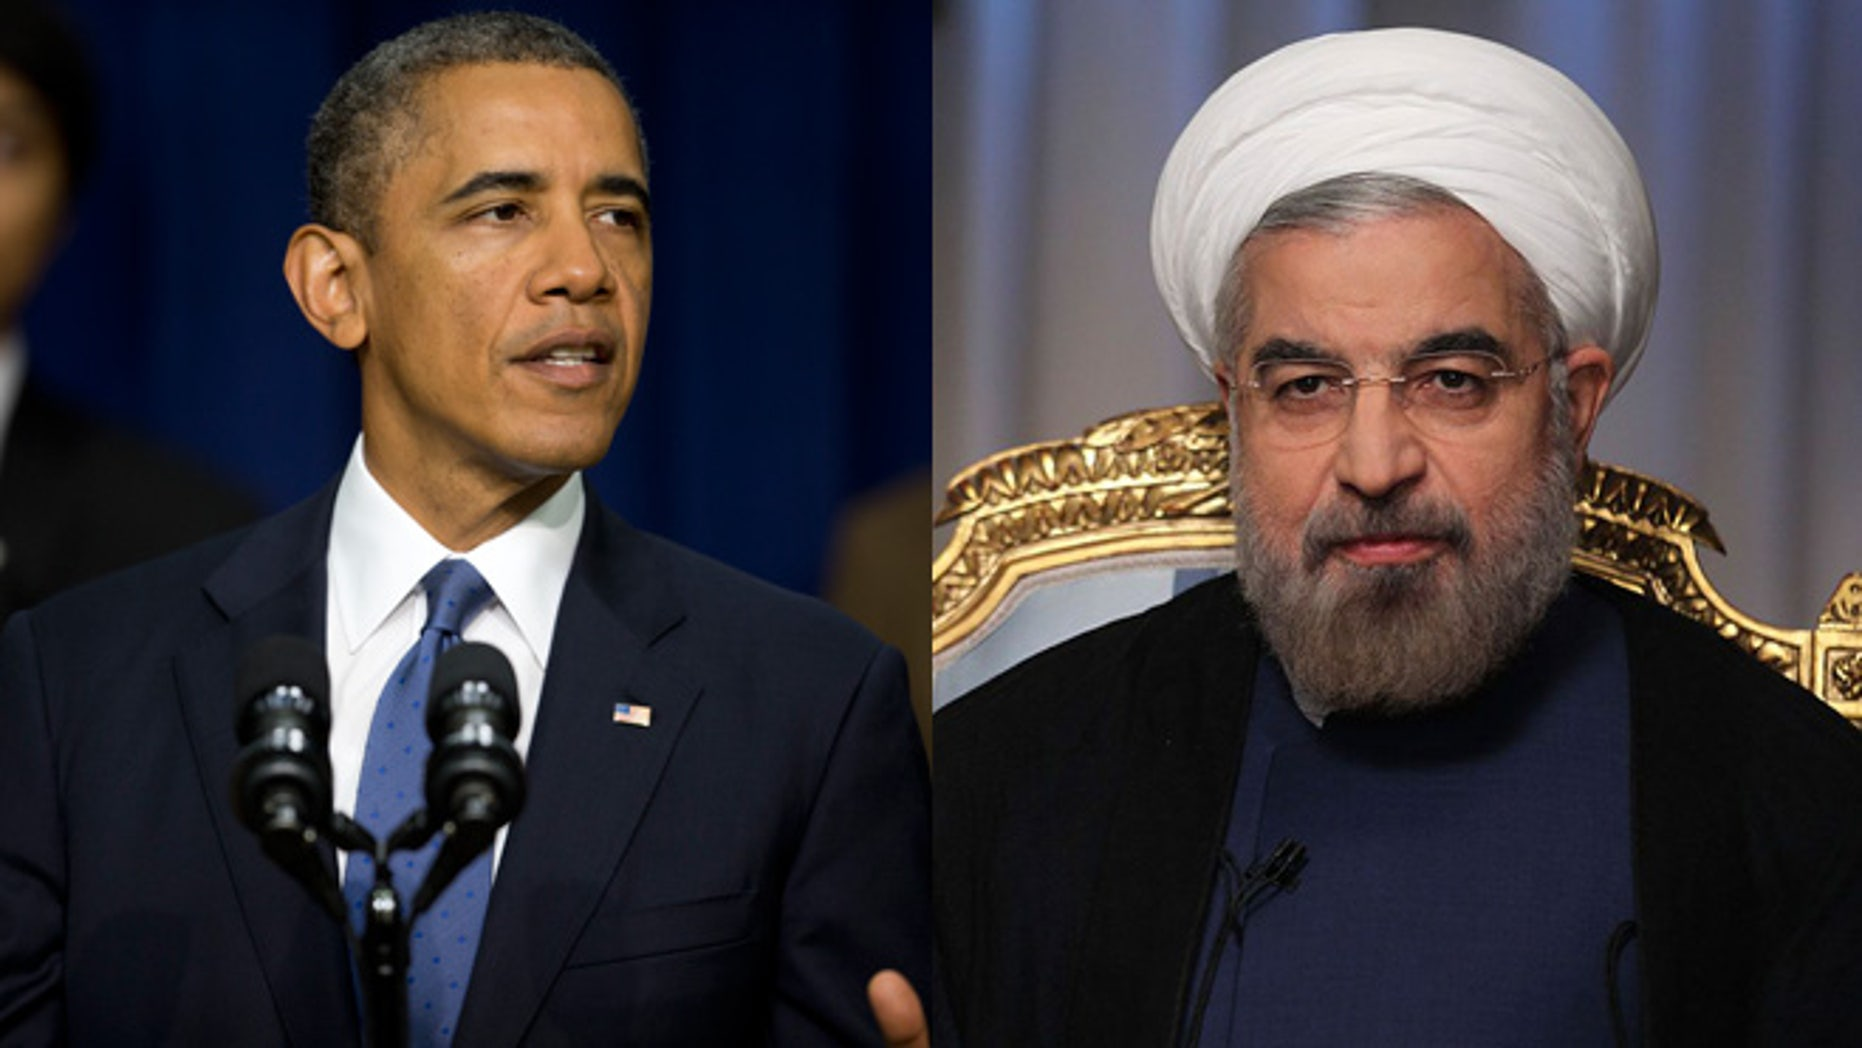 Shown here are President Obama and Iranian President Hassan Rowhani.